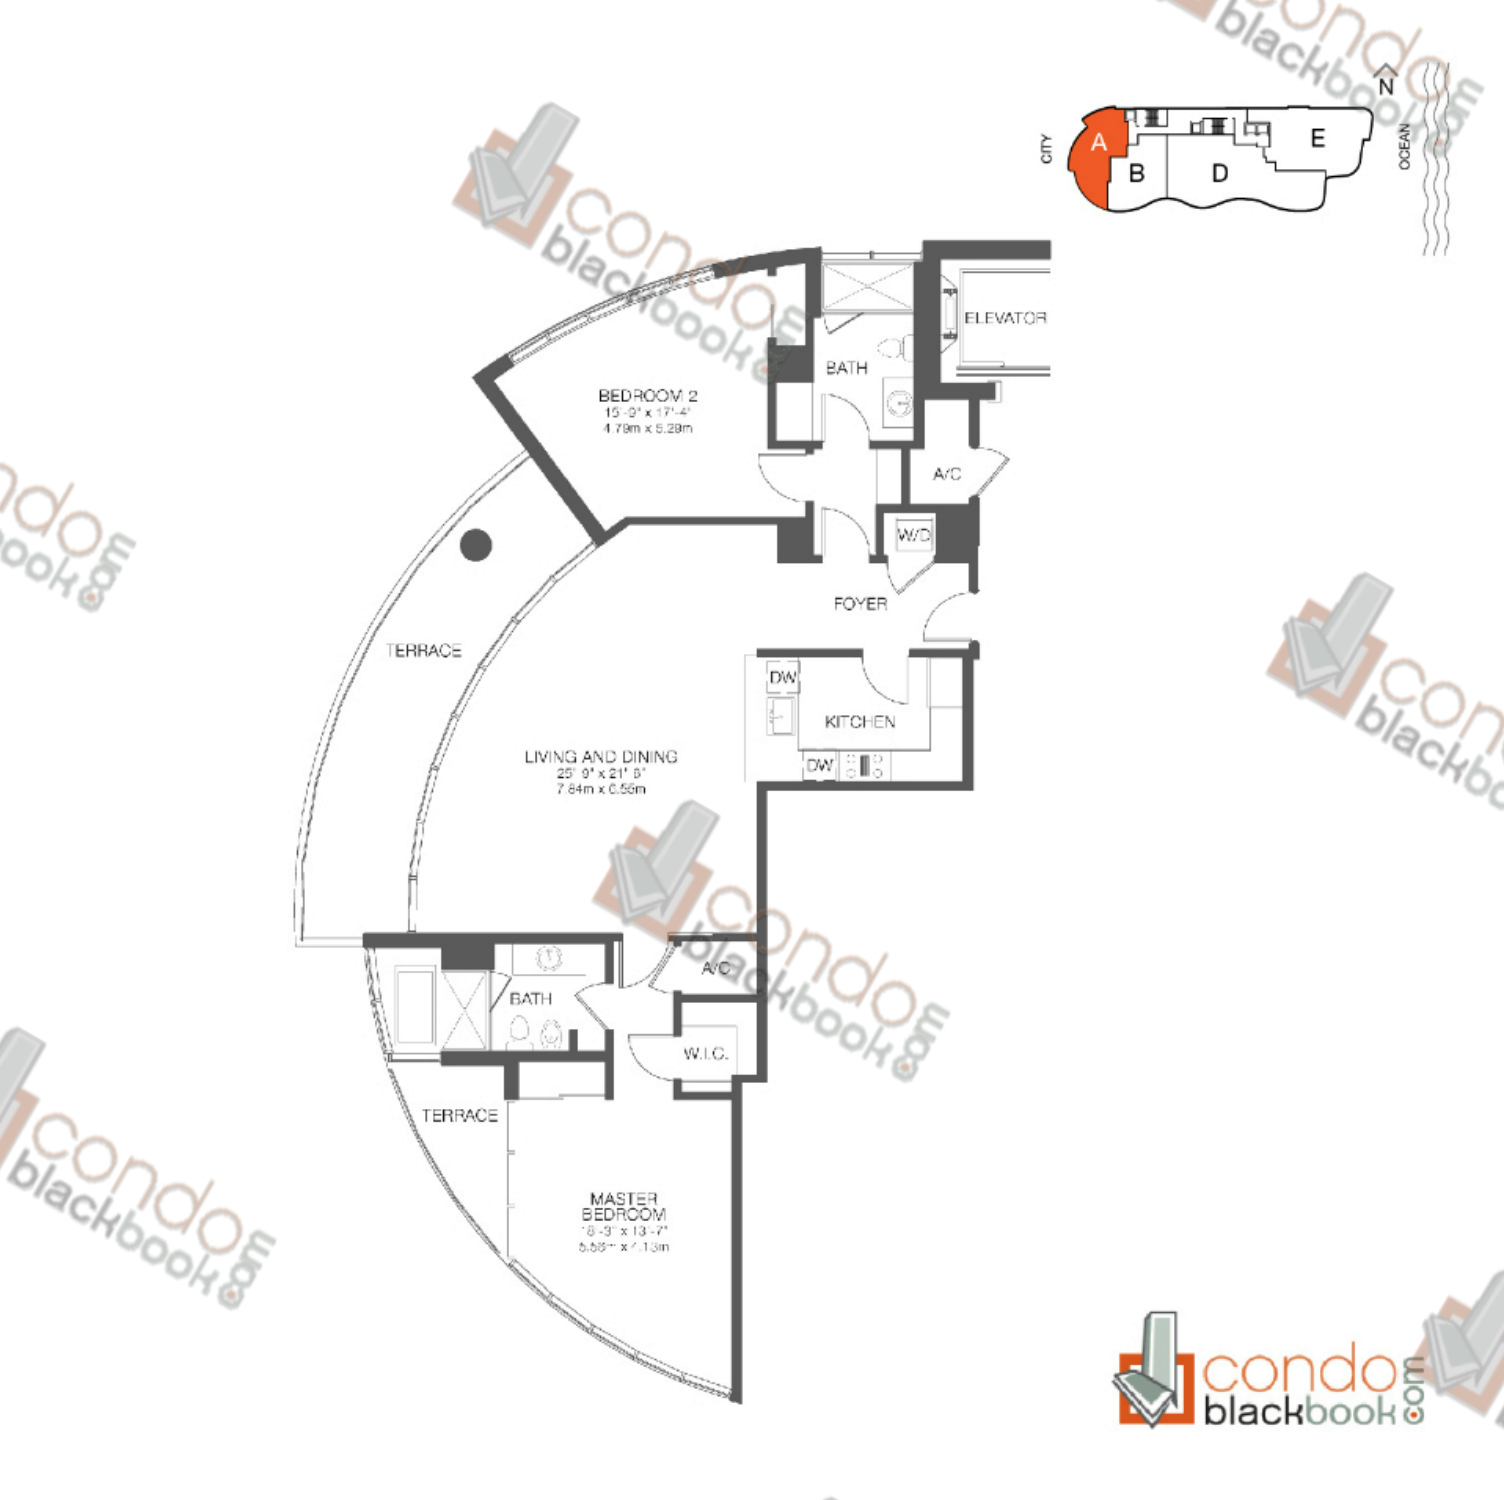 Floor plan for Chateau Beach Residences Sunny Isles Beach, model Residence A, line 01, 2/2 bedrooms, 1,557 sq ft